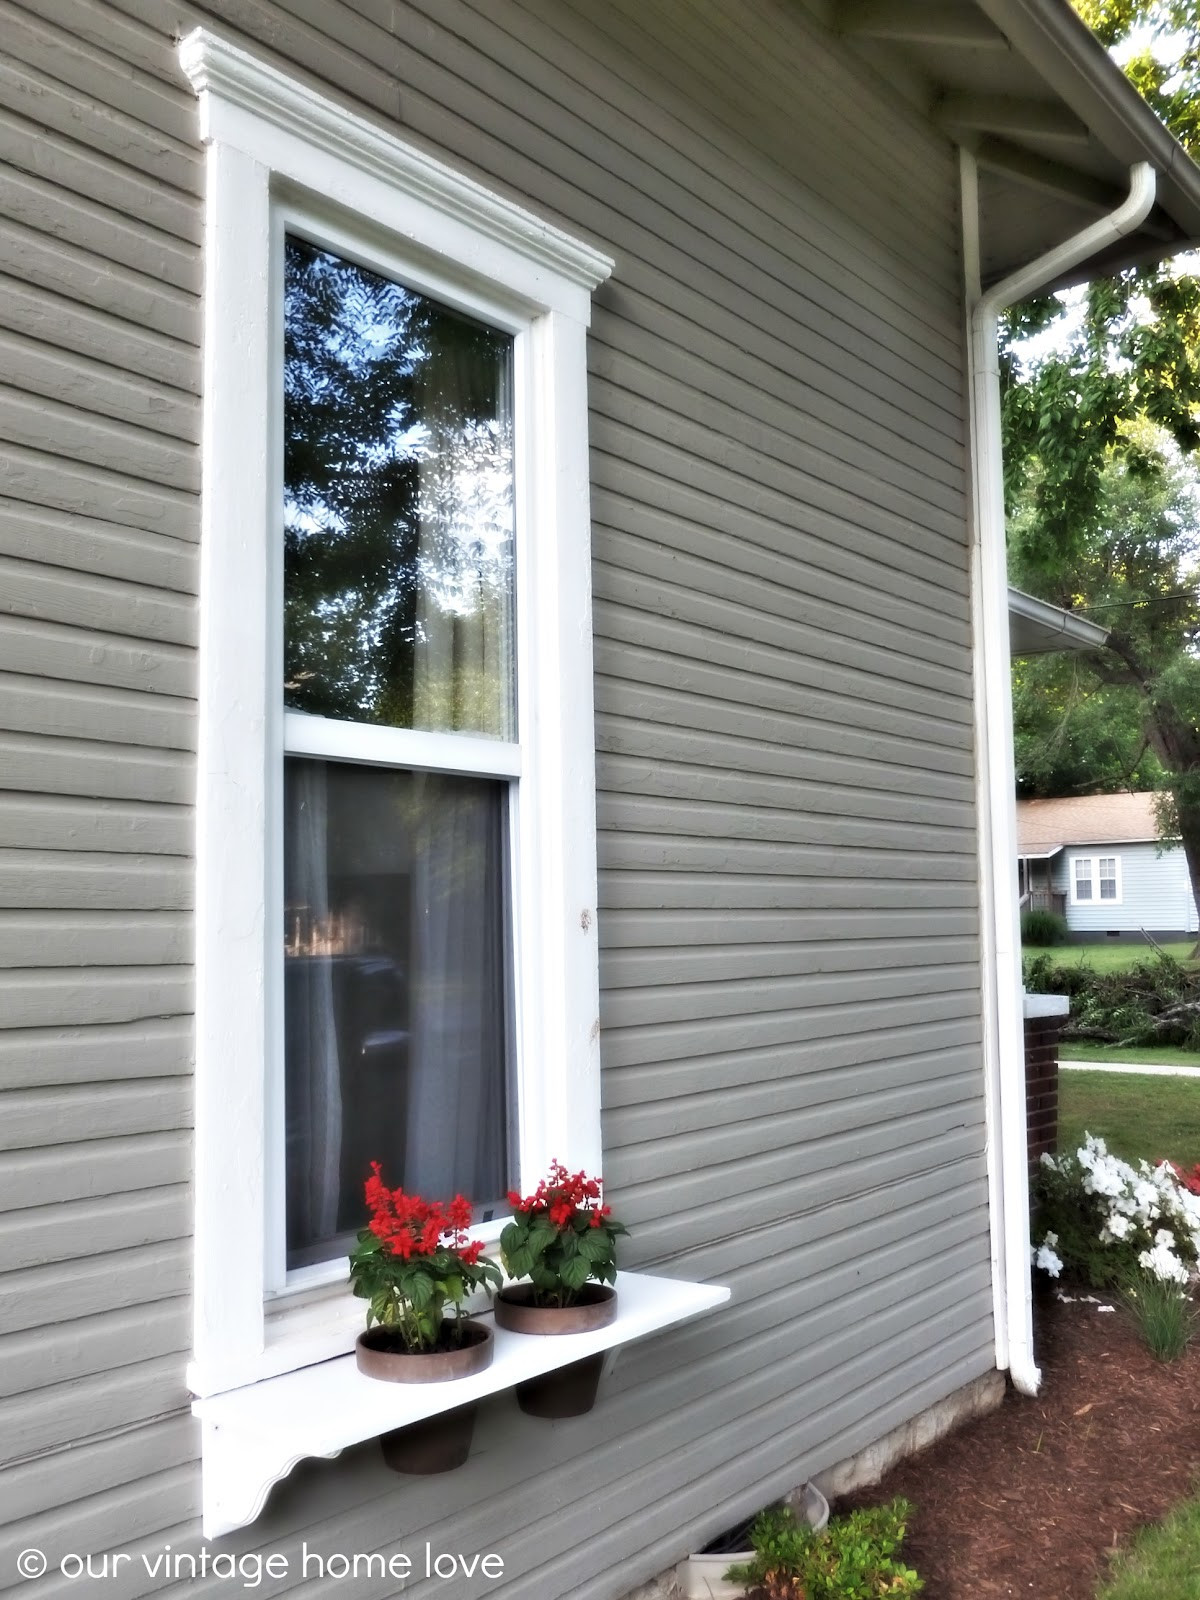 Best ideas about DIY Window Box . Save or Pin our vintage home love DIY Window Boxes Now.